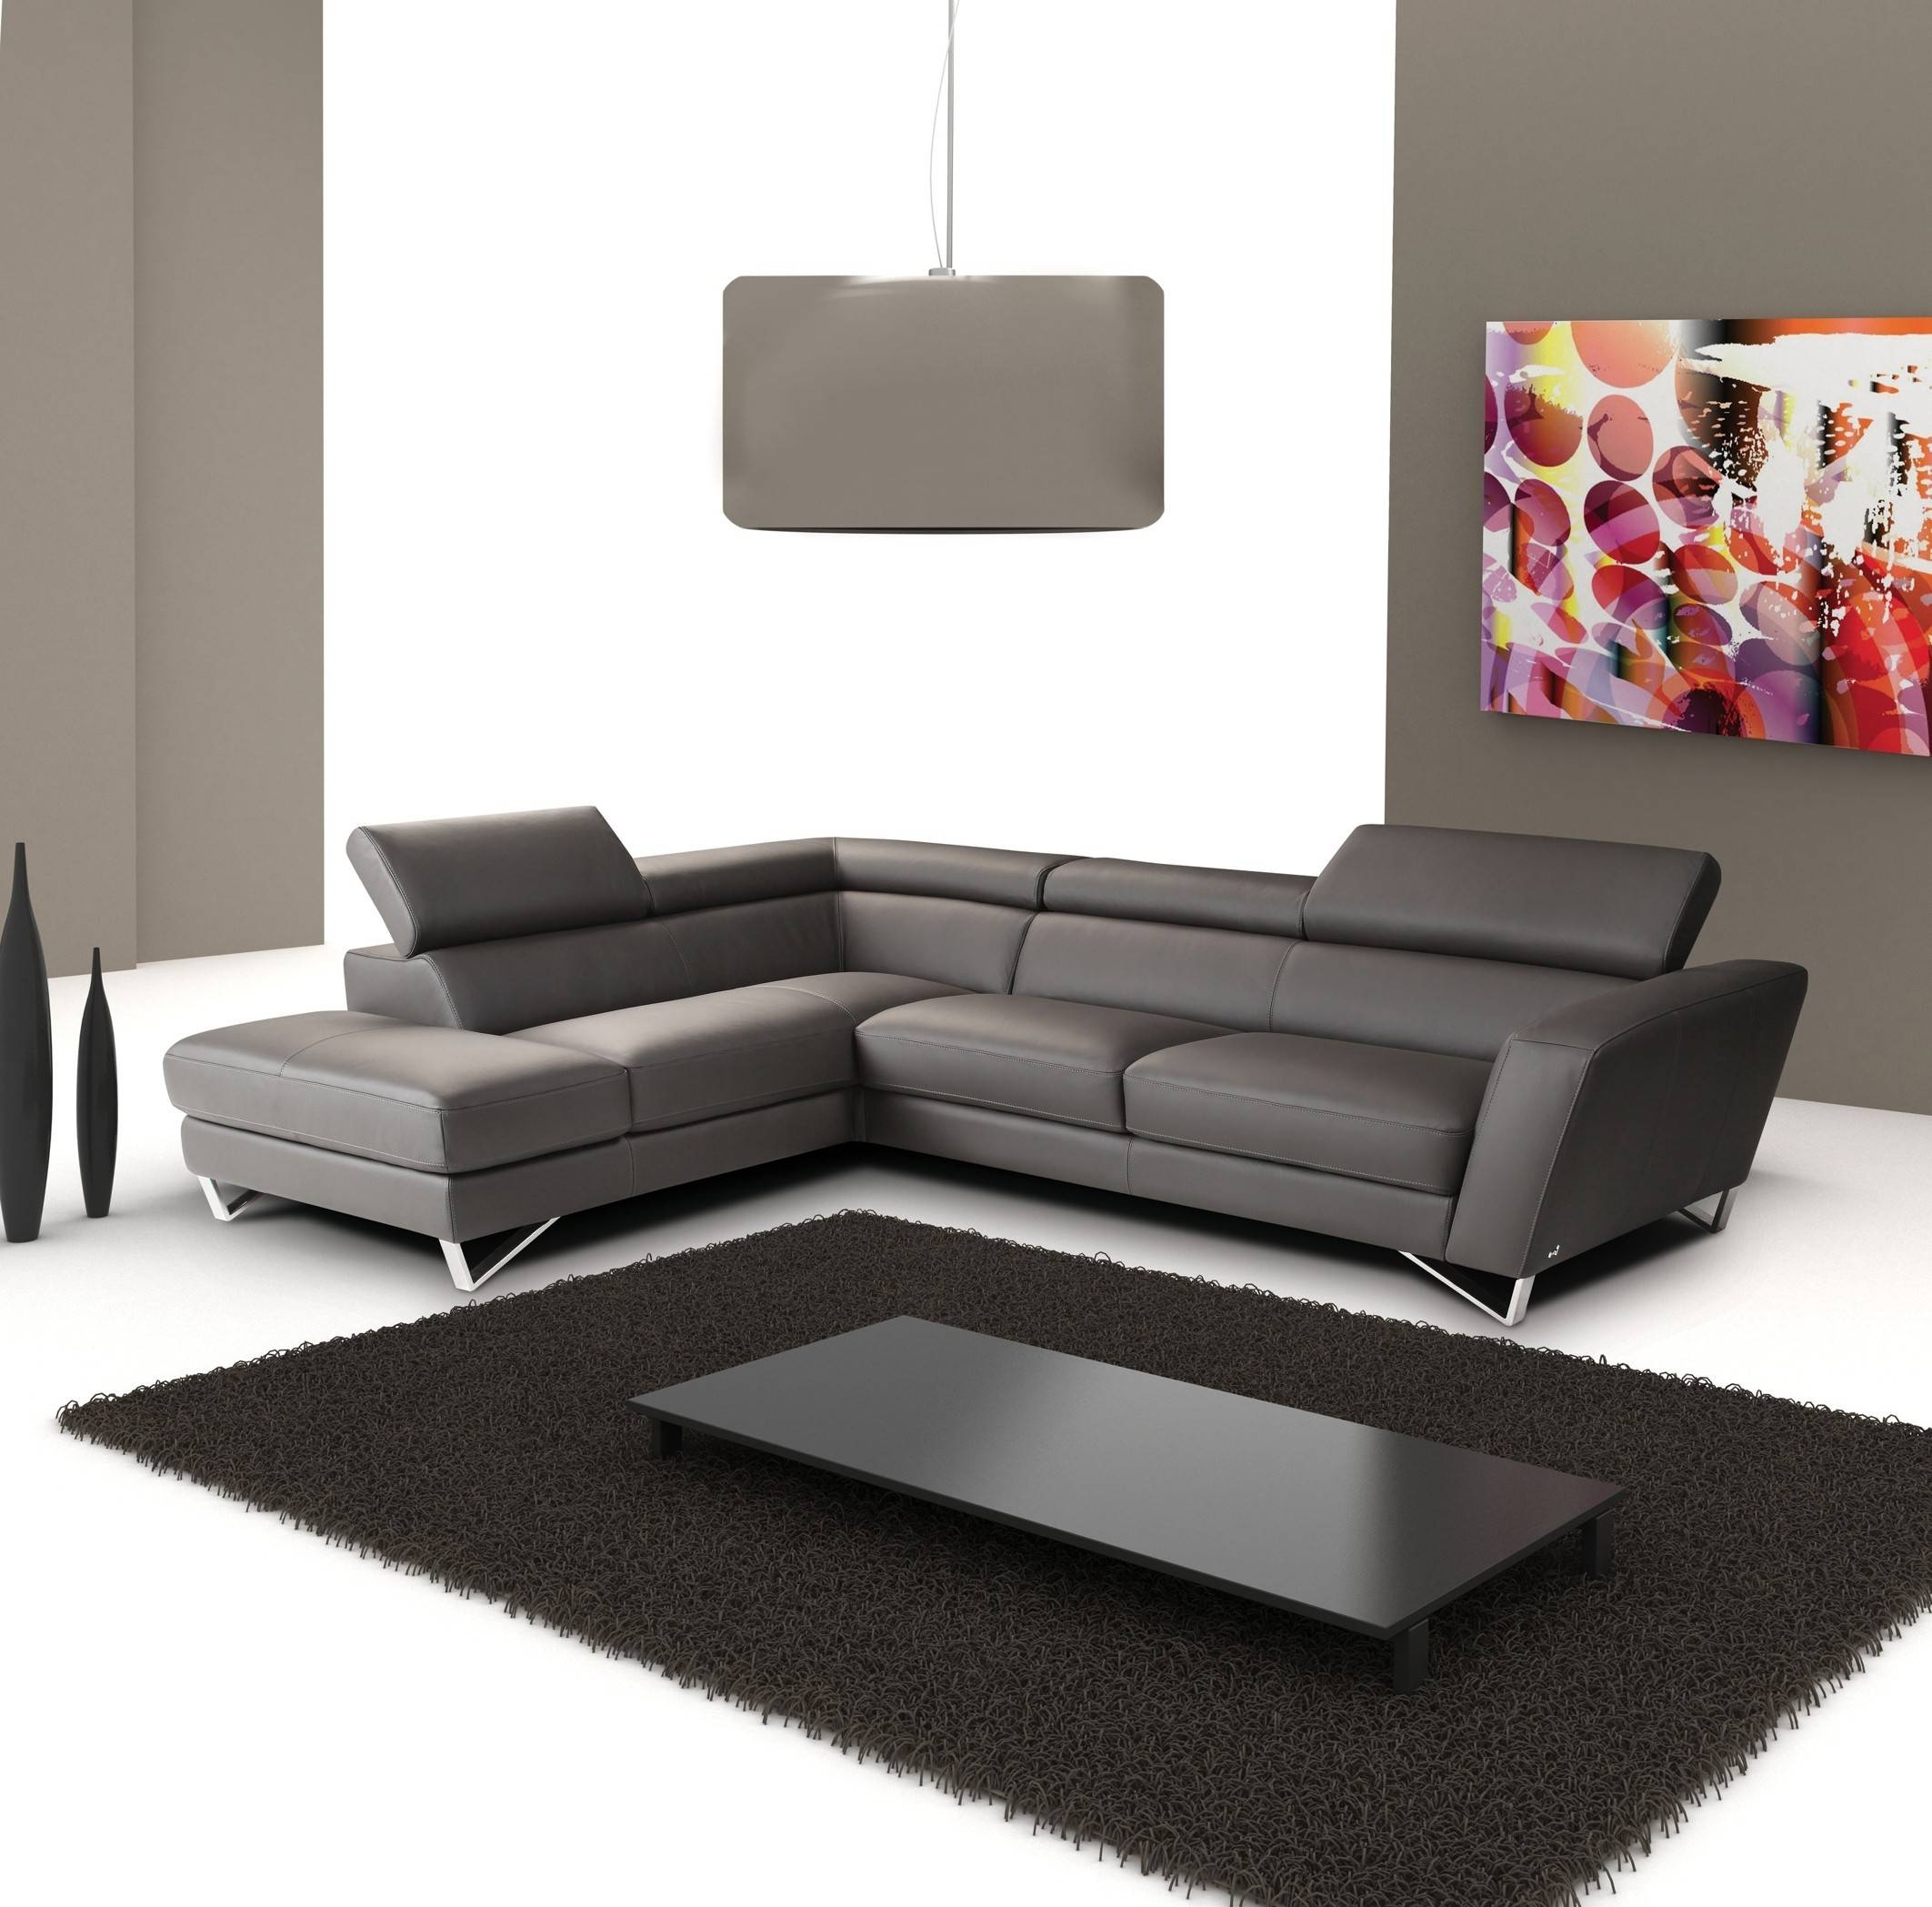 Furniture: Beautiful Sectional Sofas Cheap For Living Room inside Cool Sofa Ideas (Image 10 of 30)